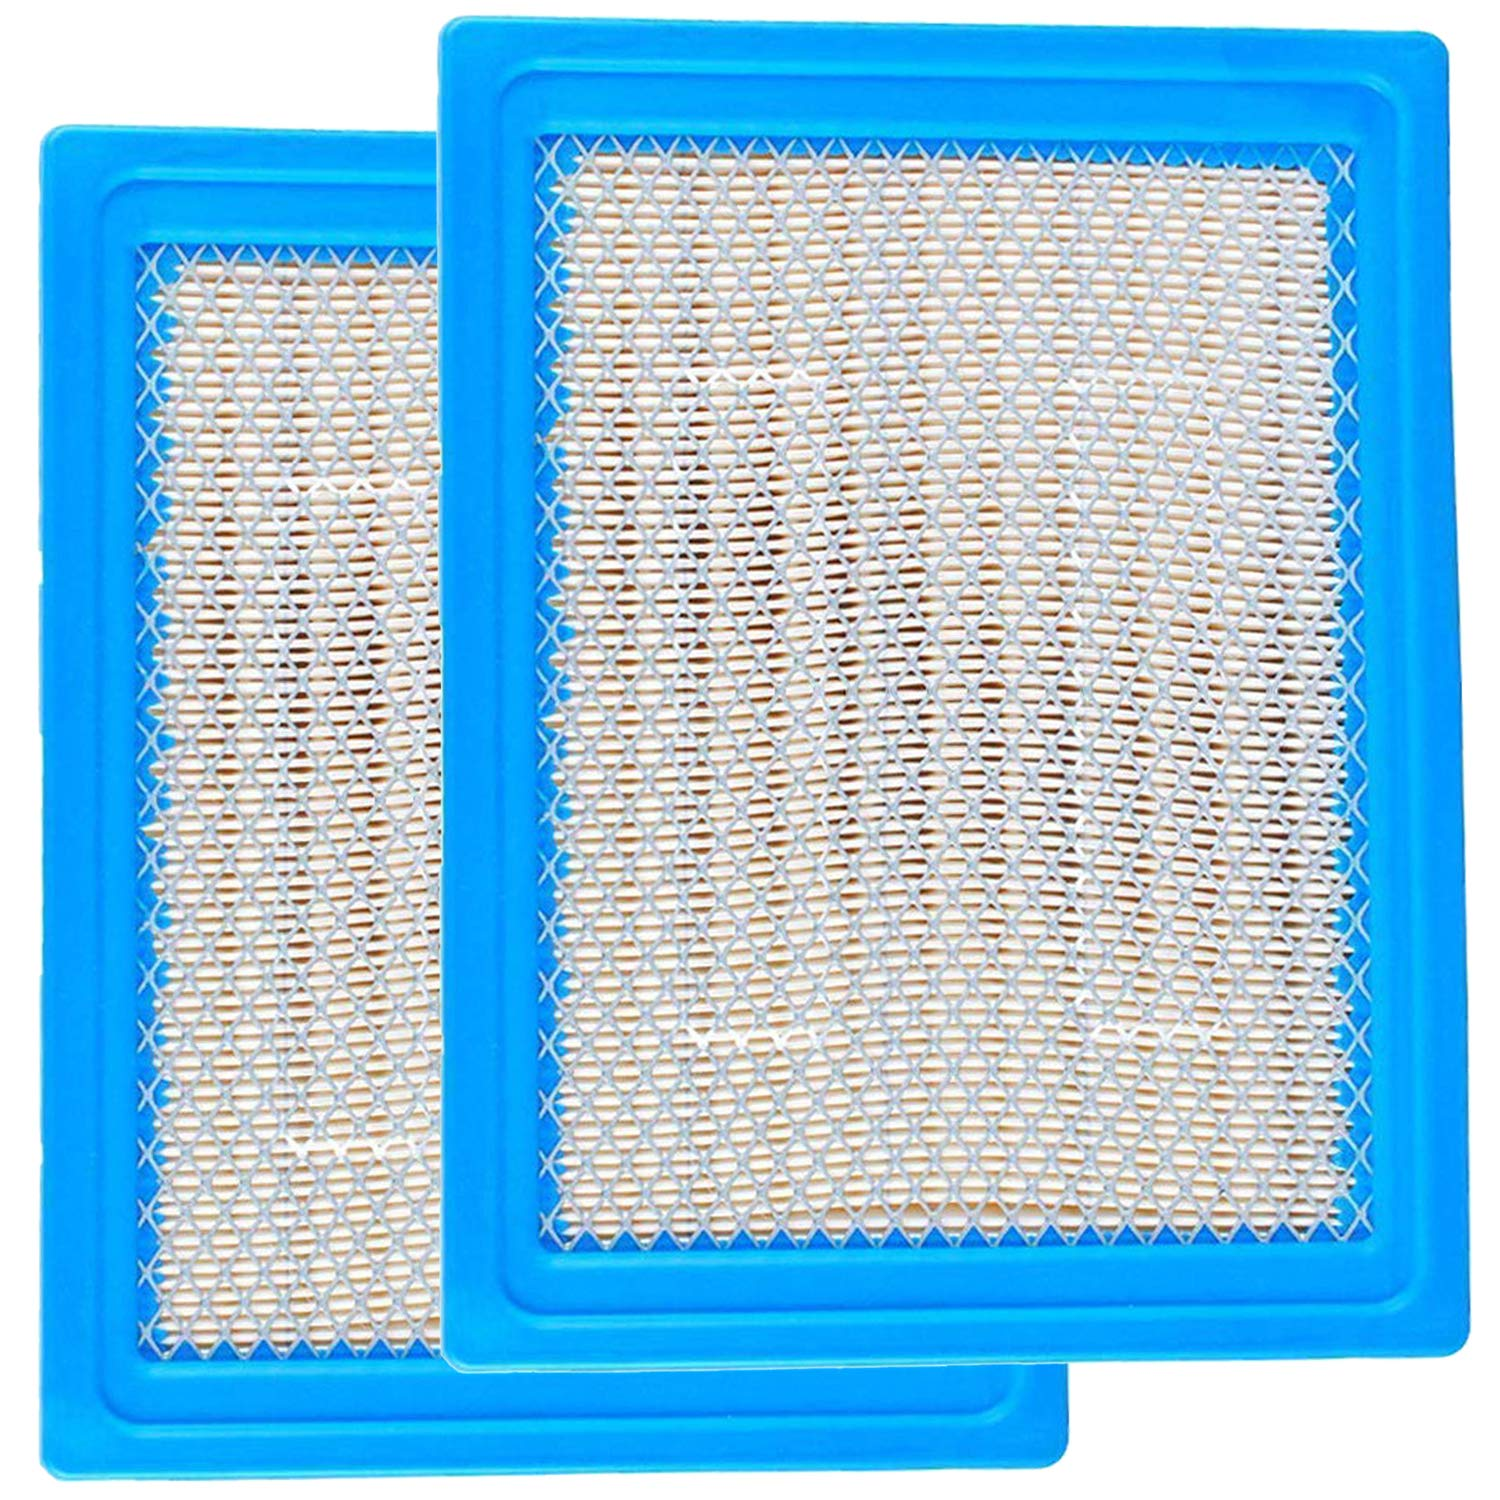 Ranger 900 xp Air Filter 7081706 Replacement for Polaris 2012-2019 Ranger RZR 570 900 1000 XP Crew Diesel by Wadoy